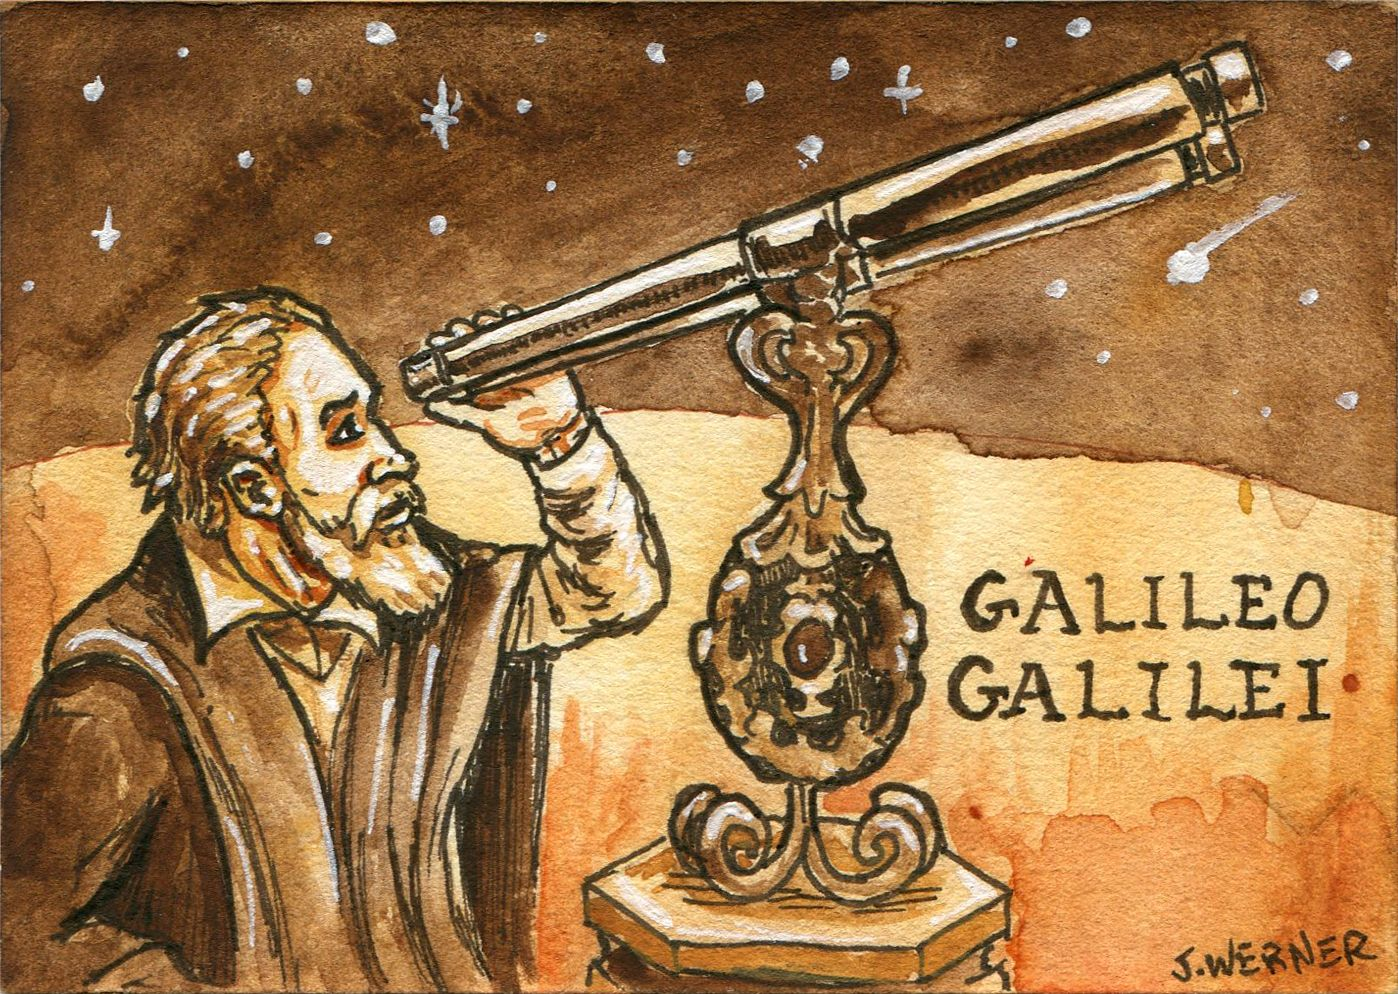 "Galileo Galilei invented the Telescope. He claimed the earth was round and was persecuted by the authorities. Together with other scientists, they formed an 'Illuminati caucus""."